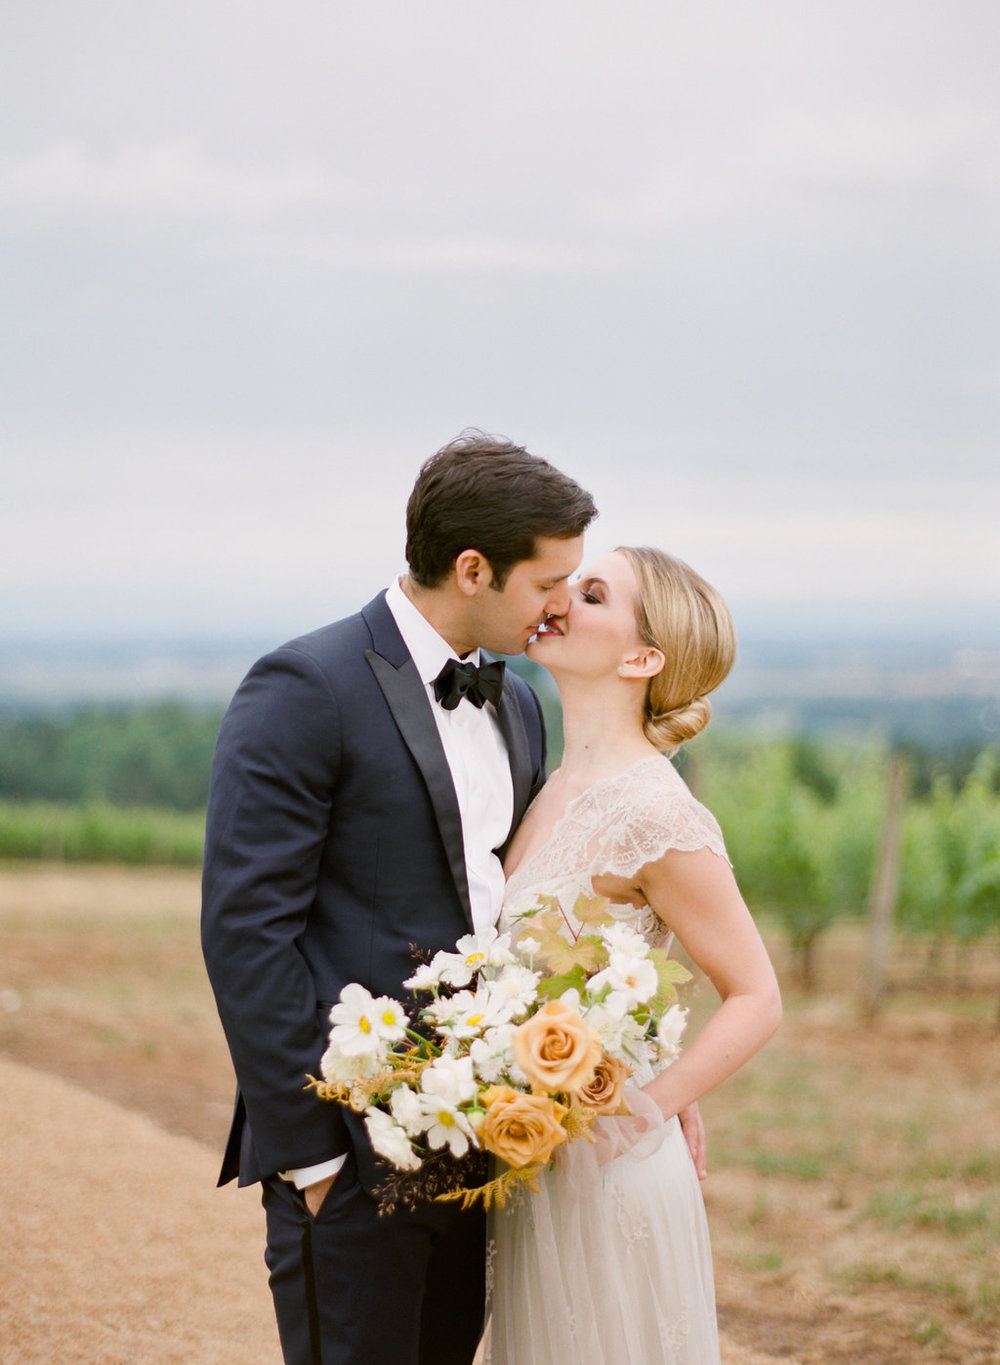 Carlos-Hernandez-Photography-Black-Walnut-Inn-Vineyard-Wedding-Inspiration-Dundee-Oregon-151.jpg